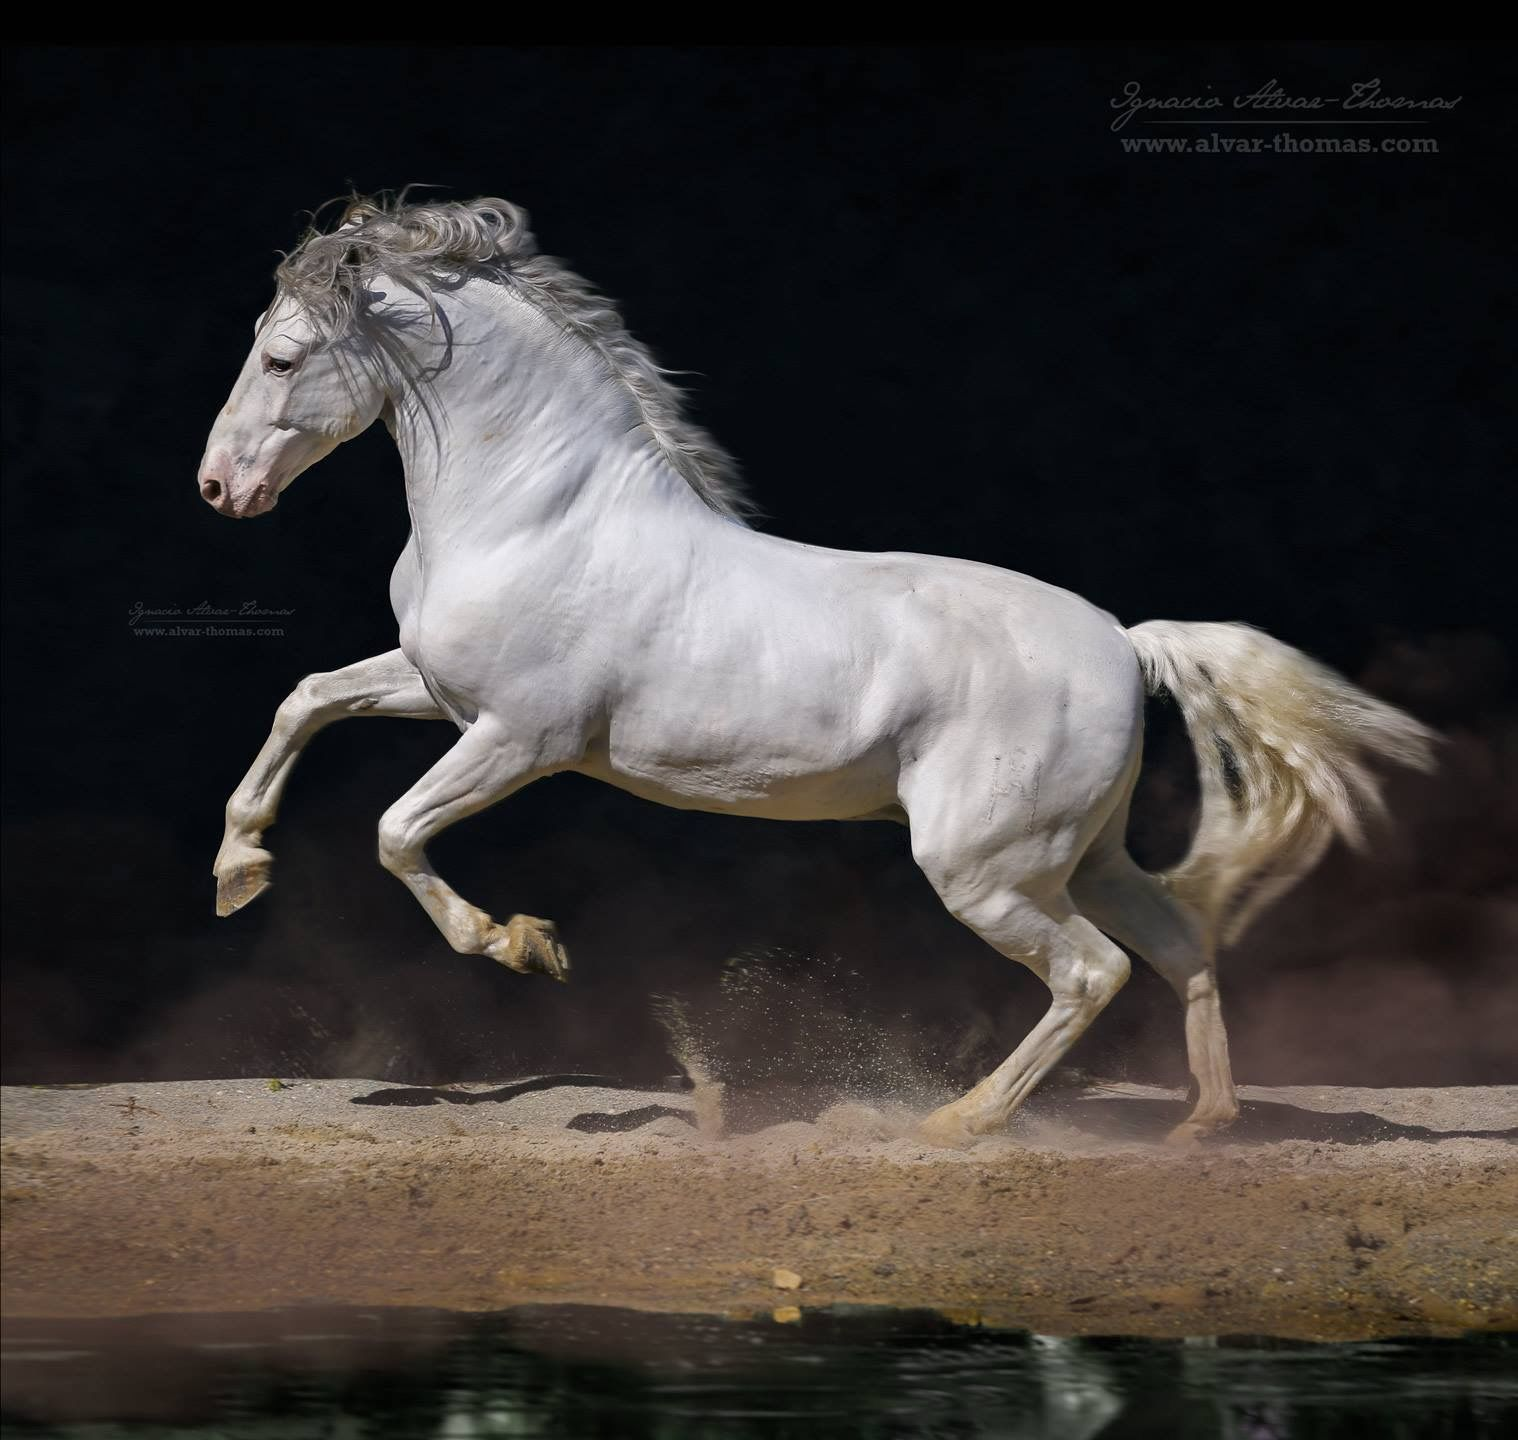 Horse running kicking up sand at the waters edge ... - photo#44